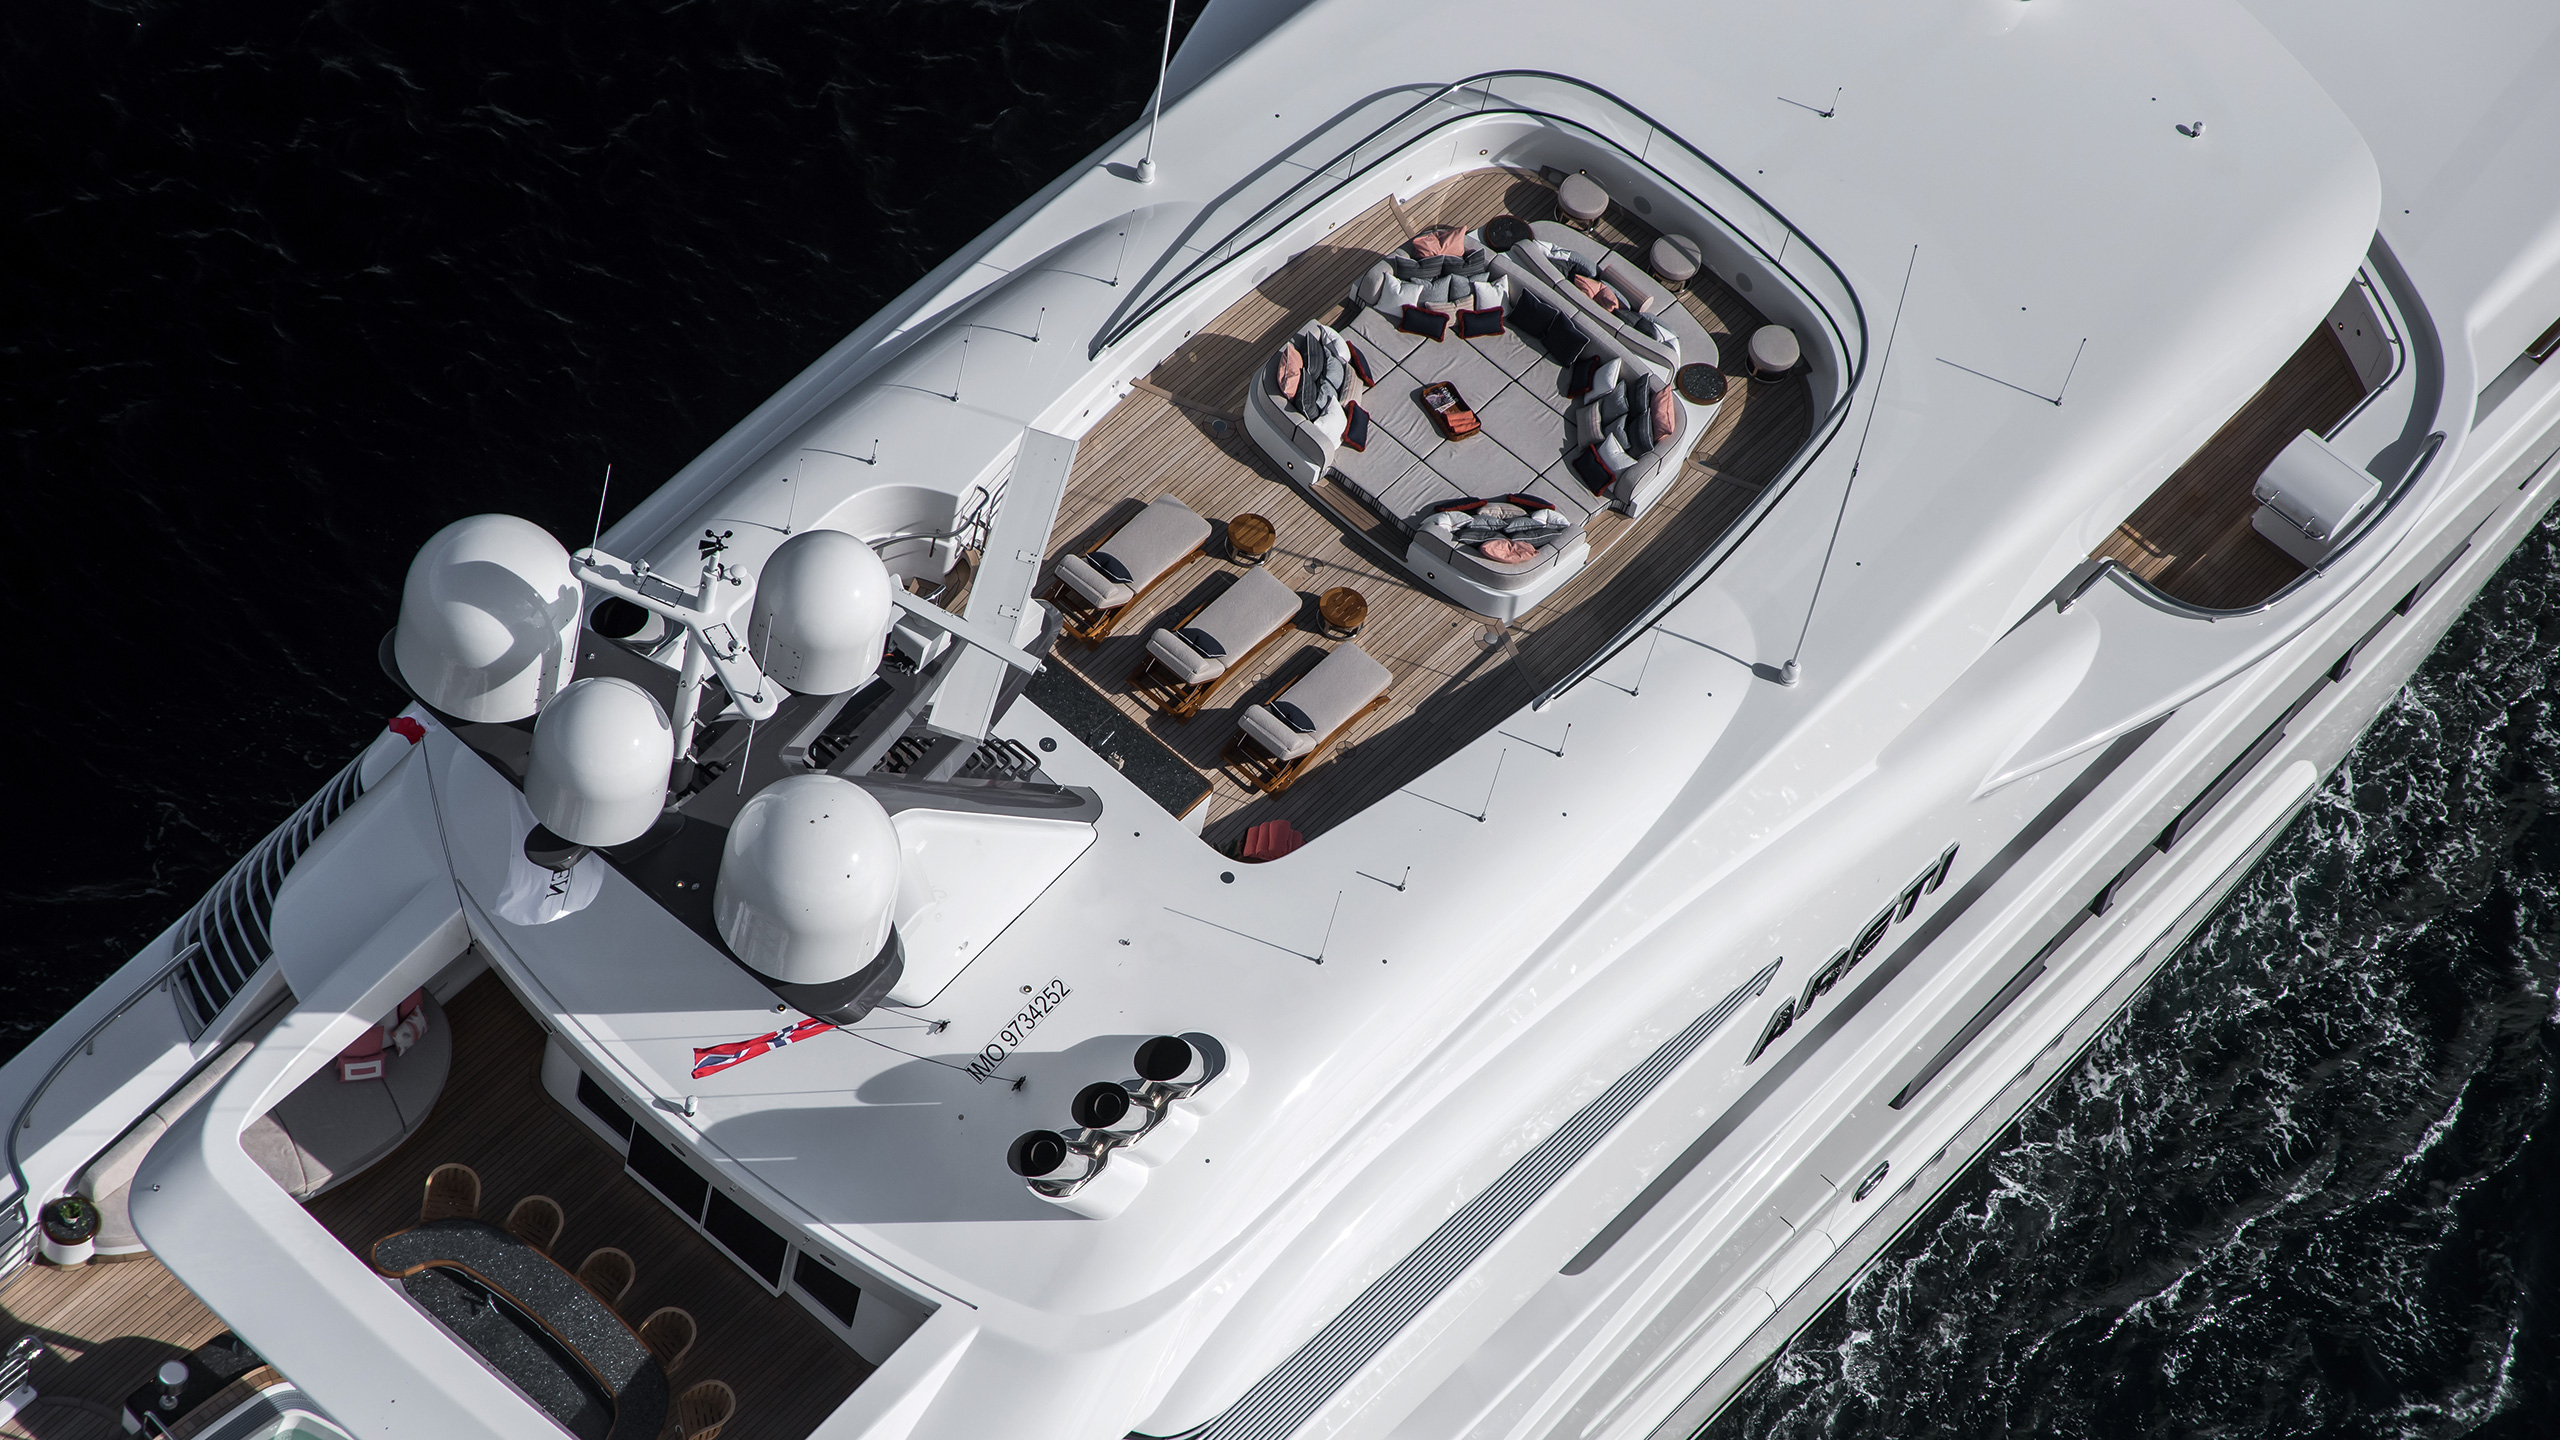 aerial-view-of-the-lurssen-superyacht-areti-credit-tom-van-oossanen